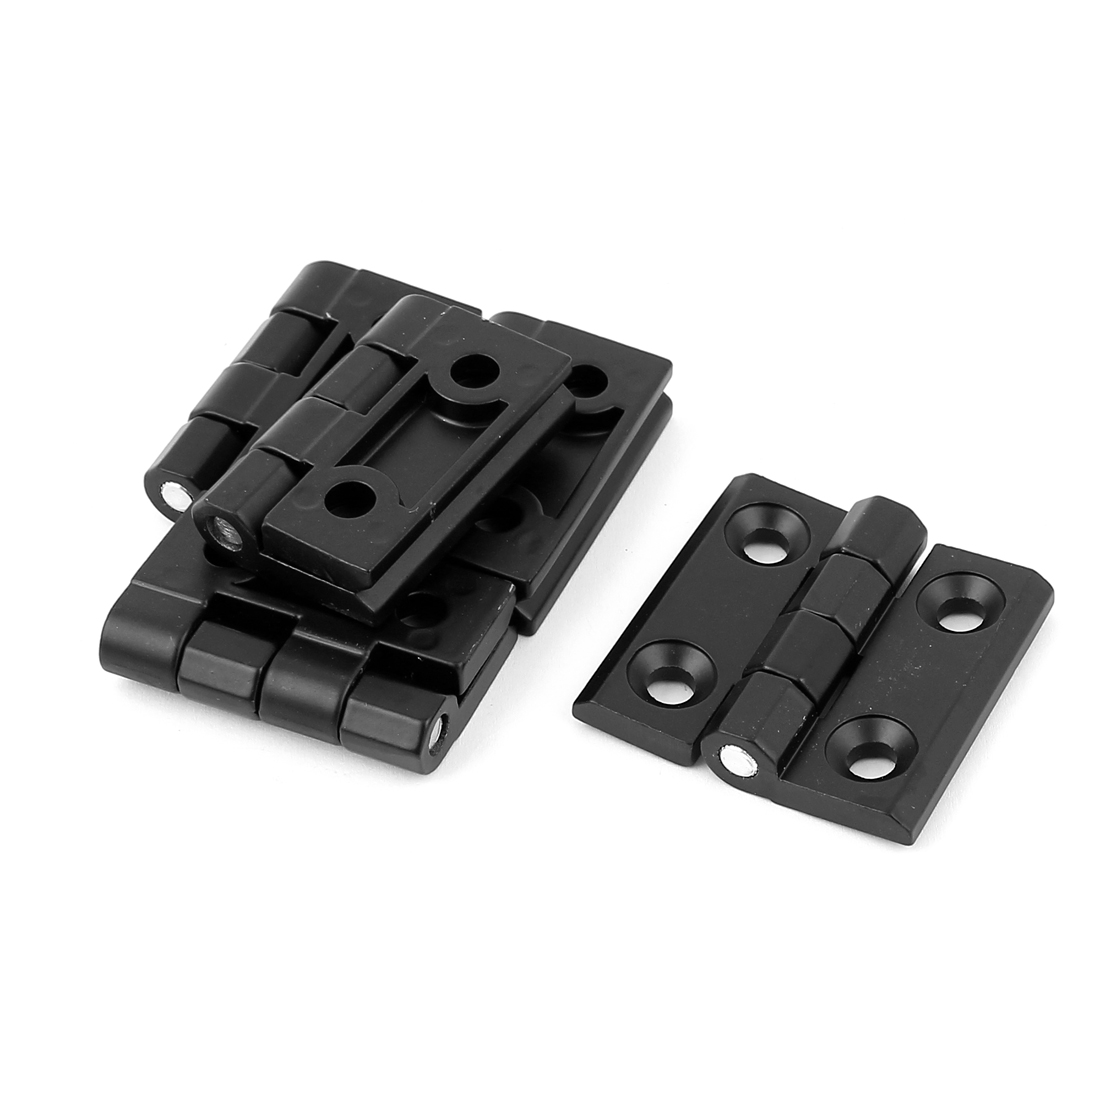 5 Pcs Black 5x5x1CM Aluminum Cabinet Cupboard Furniture Door Butt Hinge